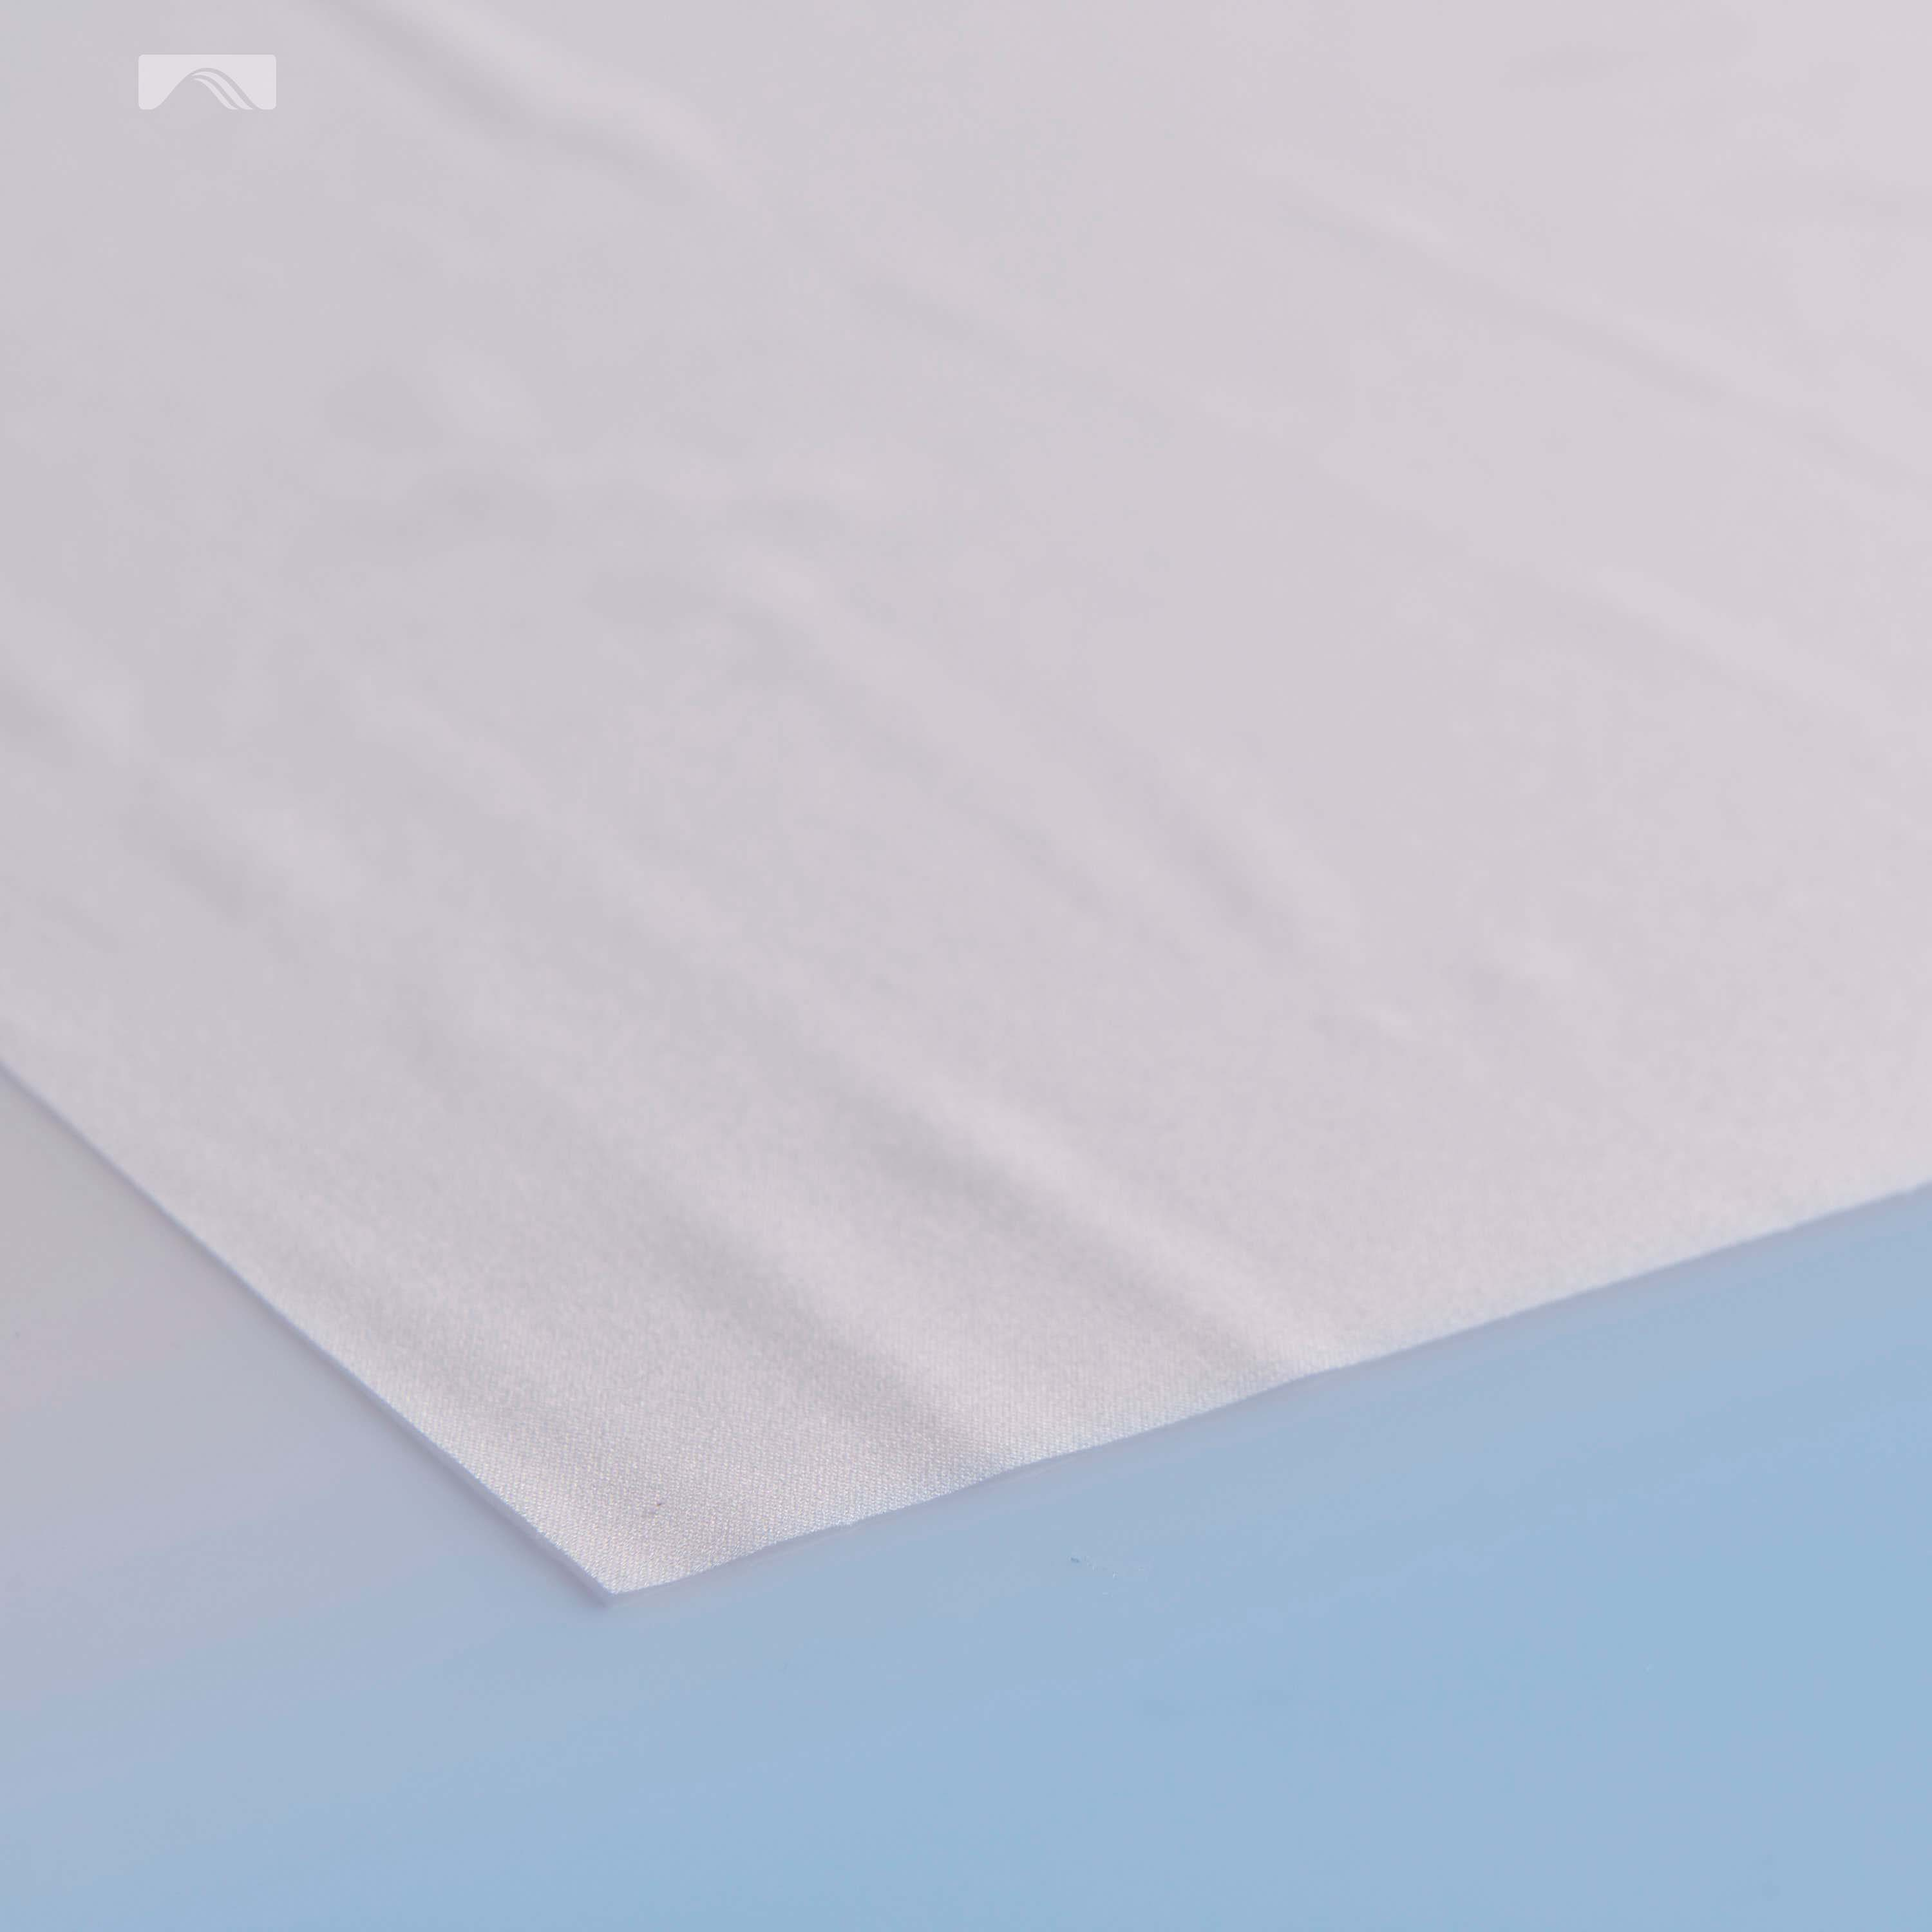 WOVEN INTERLINING | ME 9913 | 09 | Pure White 1500 x 100